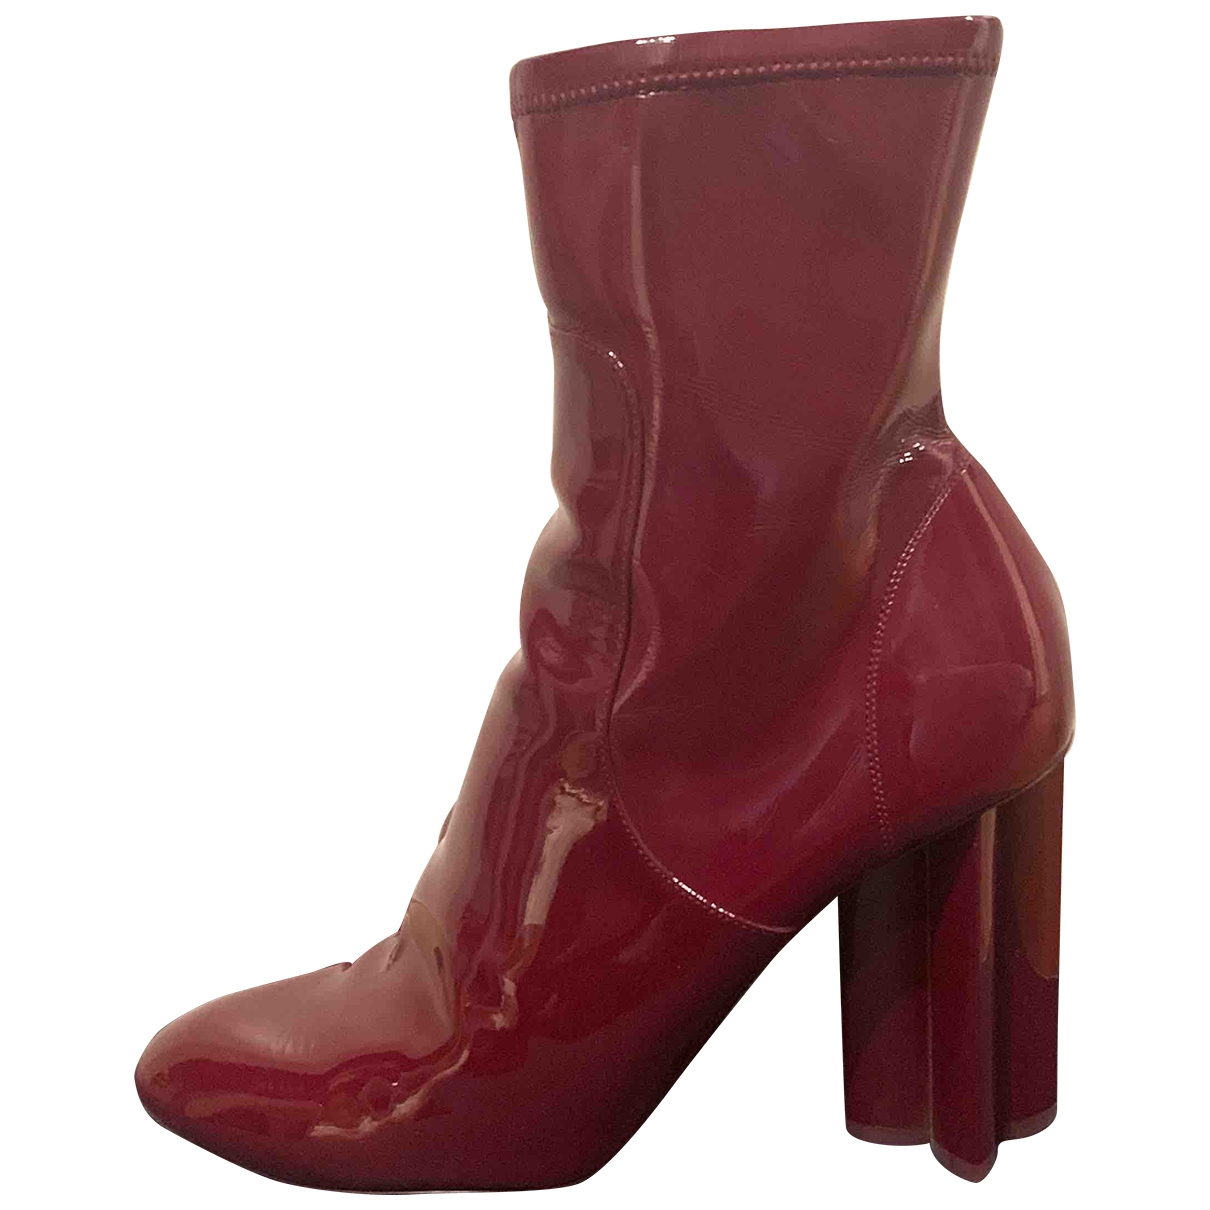 Louis Vuitton Silhouette Burgundy Patent leather Ankle boots for Women 40 EU